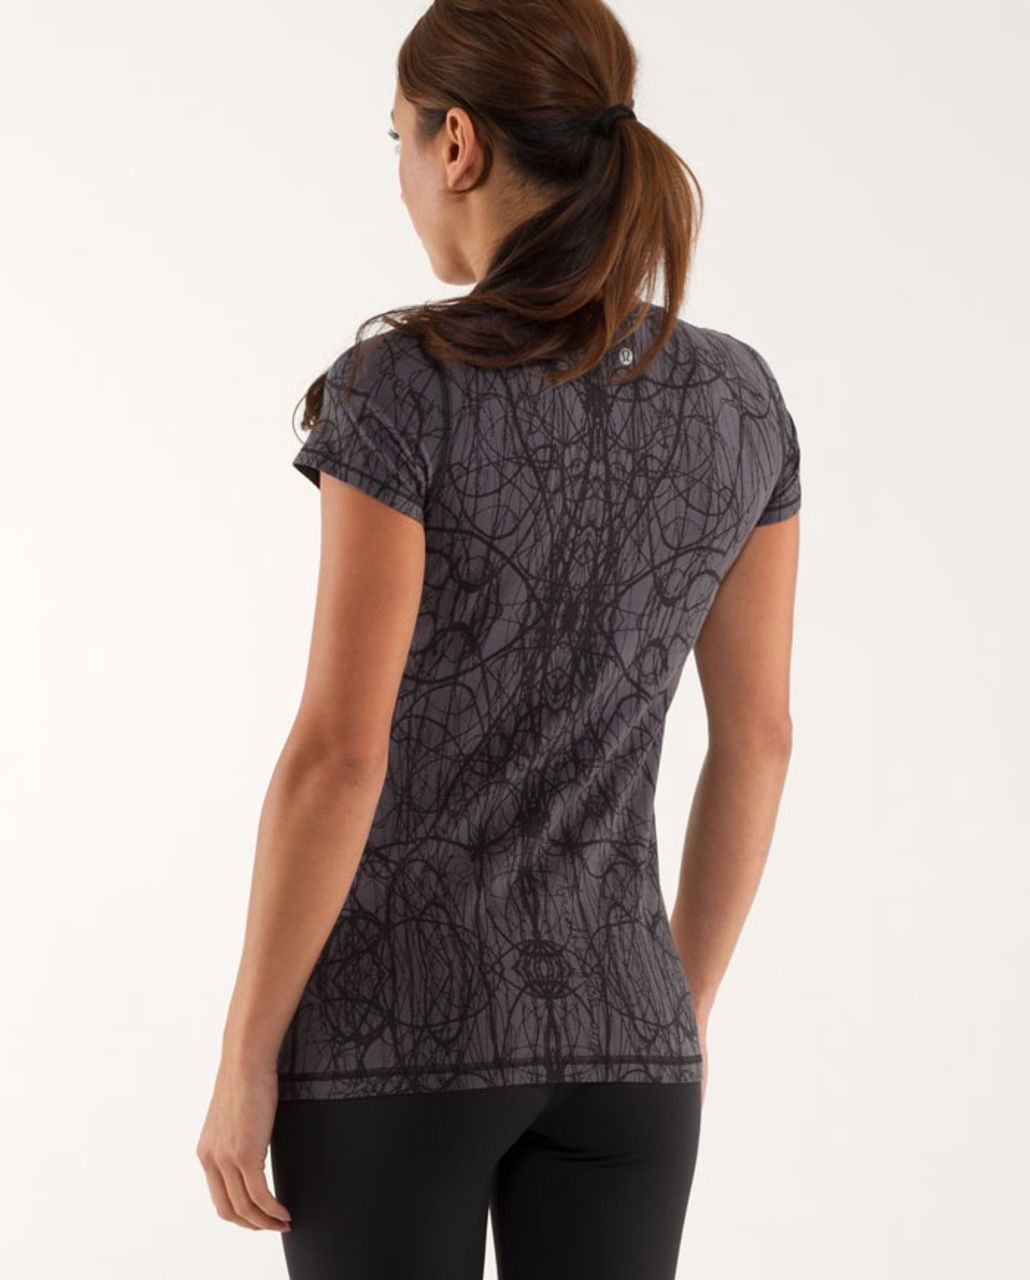 Lululemon Lively Crewneck Tee *Vitasea - Coal Ground Nesting Black Bird